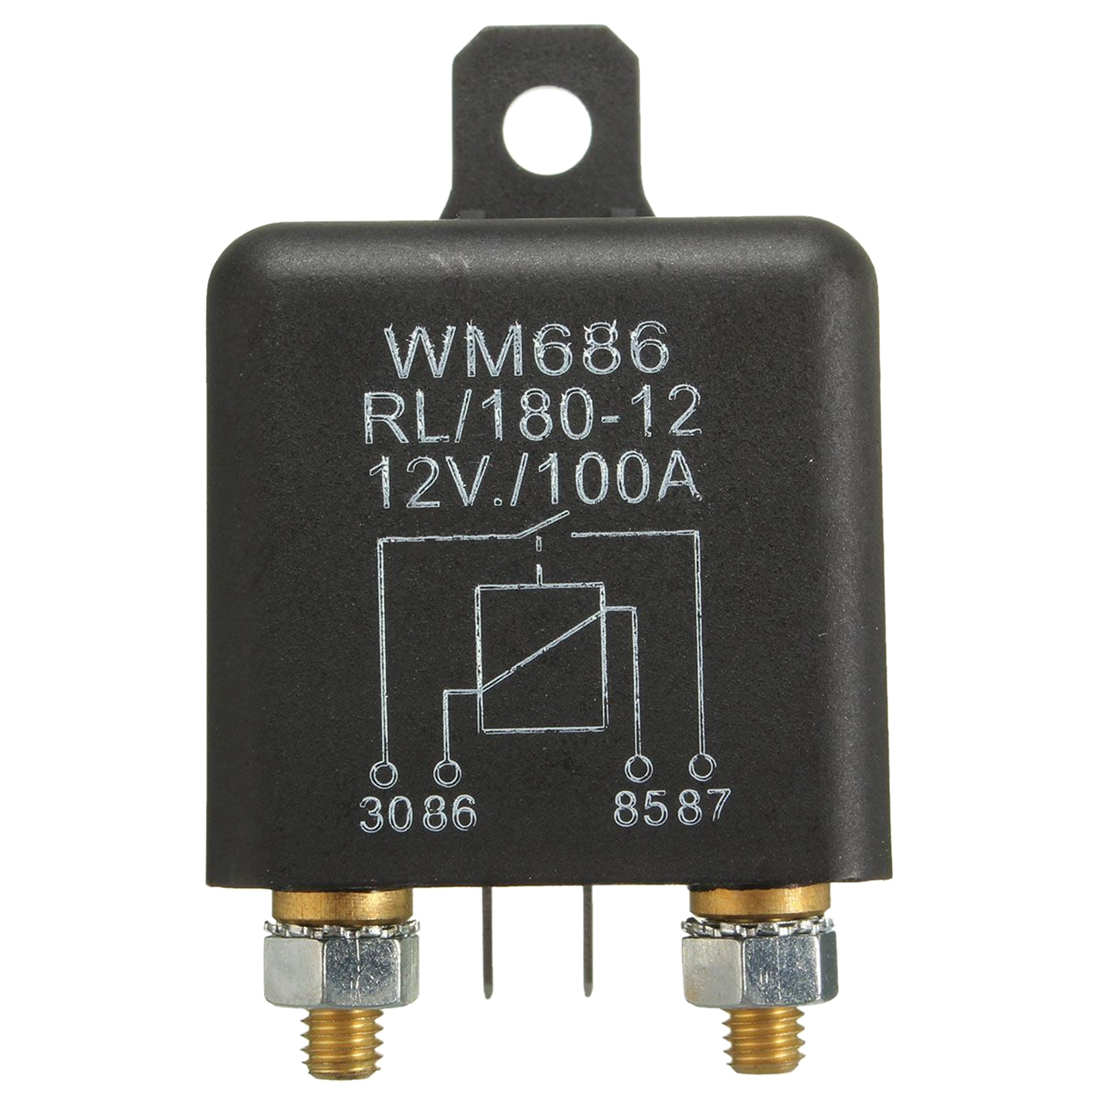 12v 100amp 4 Pin Heavy Duty On Off Switch Split Charge Relay For 12 Volt 25 Amp Metal Toggle Automotive Wiring Make Or Break Durable Firm Stable Universal Fit Ideal All Applications Such As Car Van Boat Etc